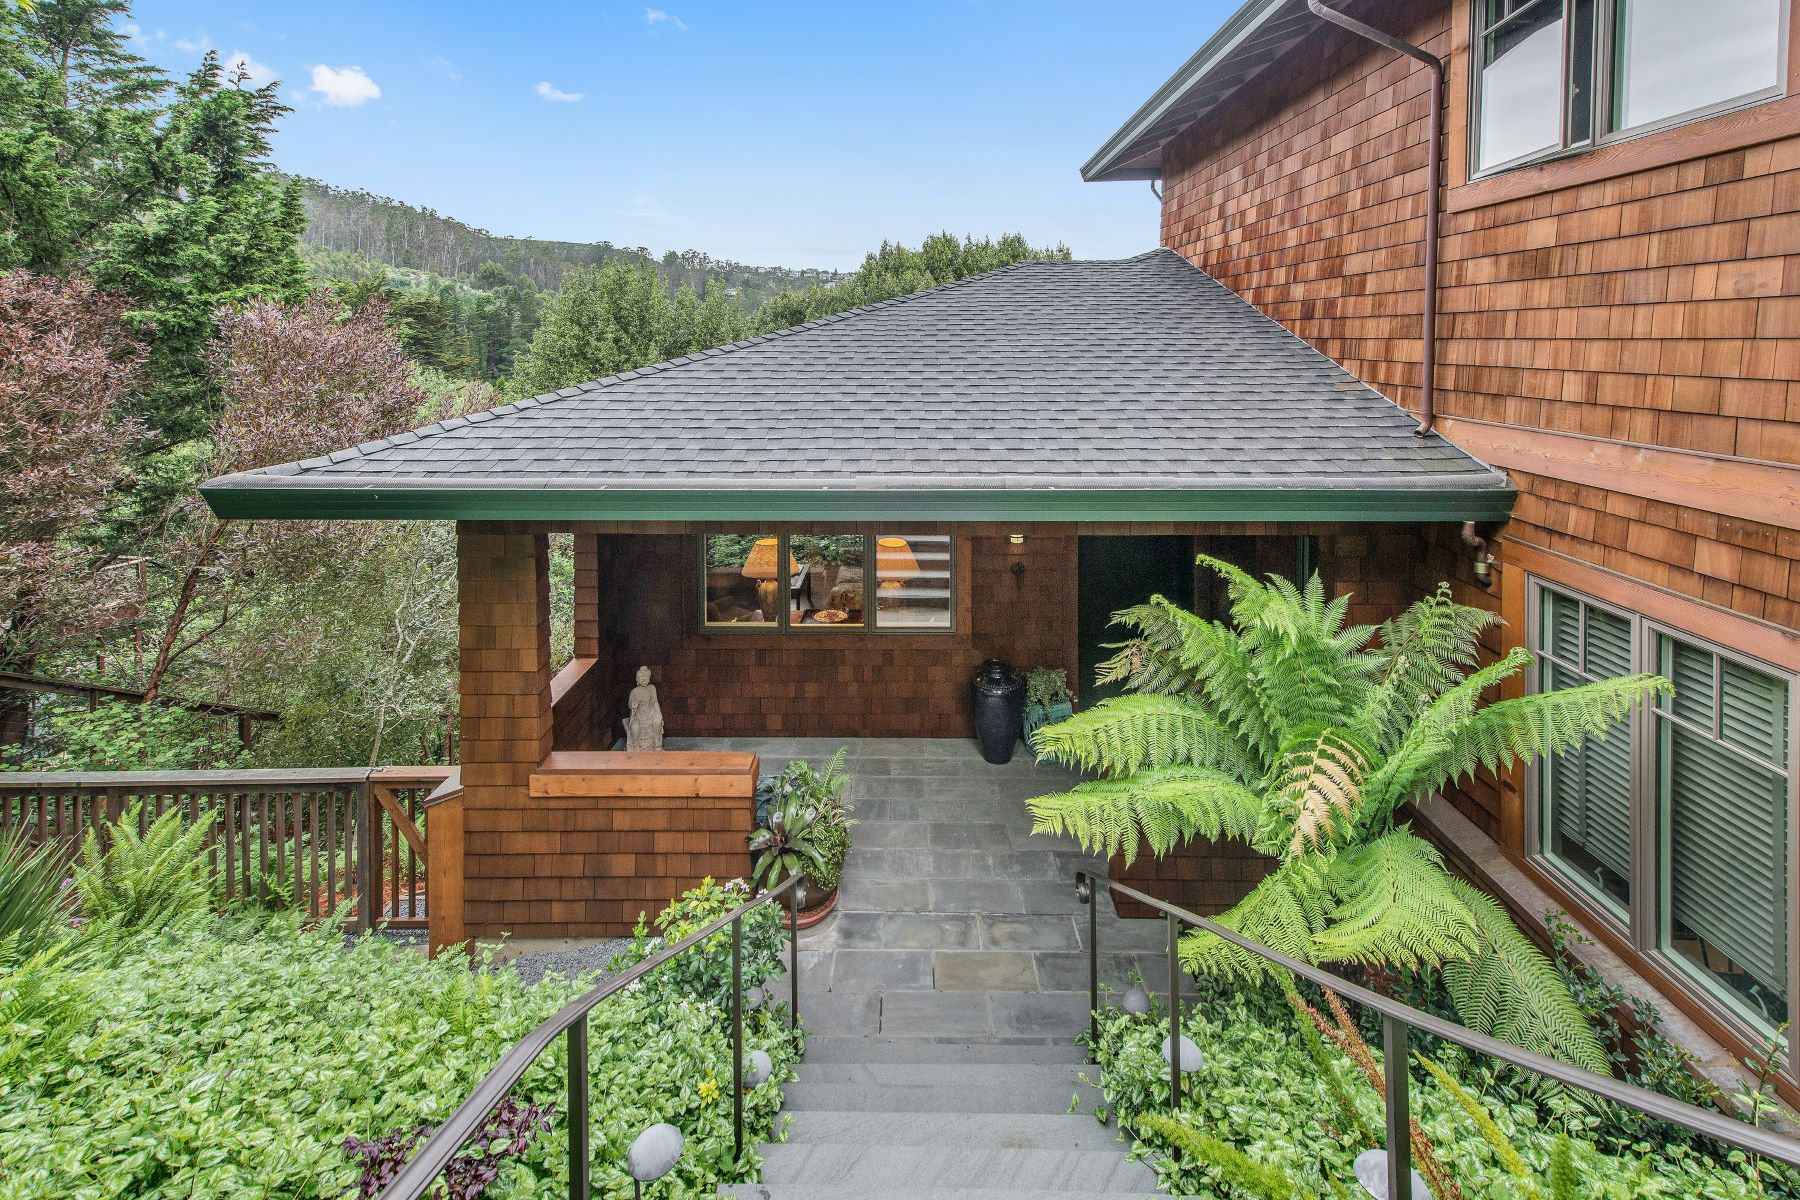 Single Family Home for Sale at Private and Tranquil Contemporary Home 699 Forest Way Mill Valley, California, 94941 United States